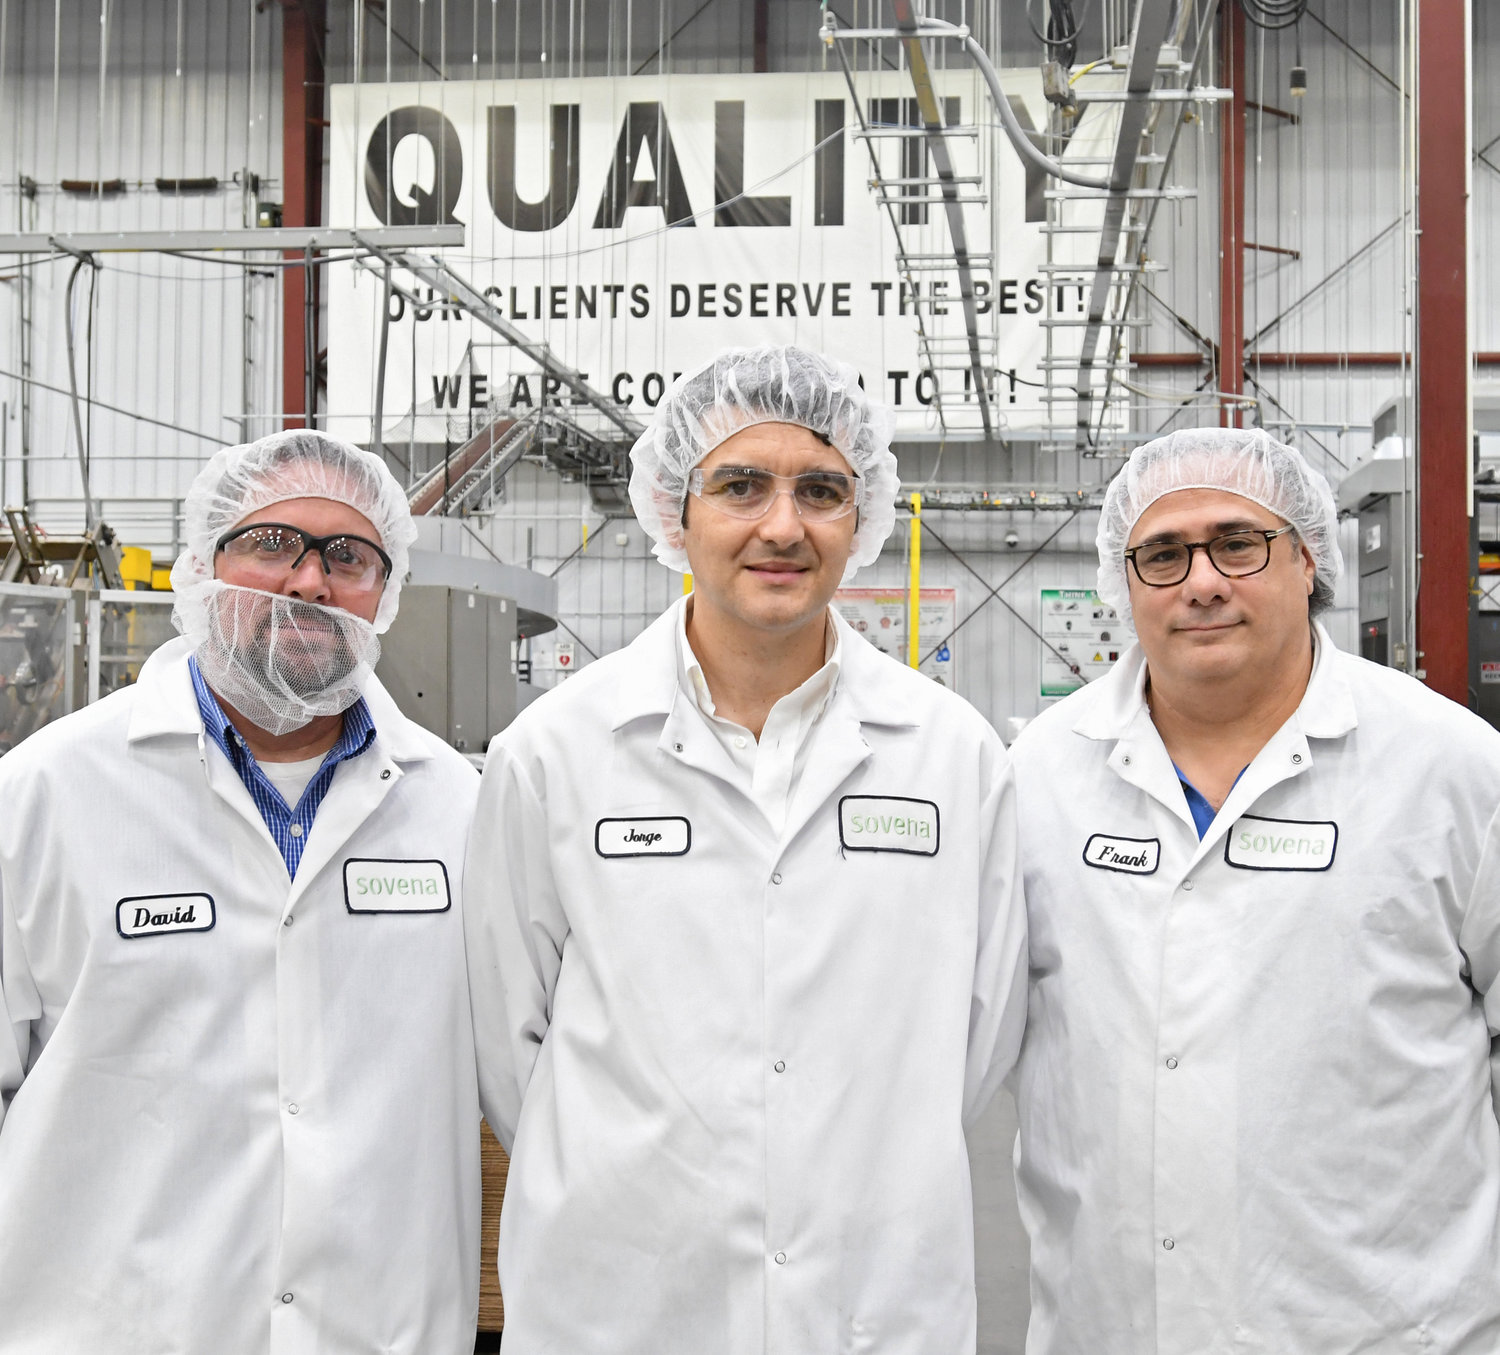 COMPANY LEADERS, QUALITY FOCUS — Inside the Sovena USA plant at Griffiss business park are, from left: Director of Human Resources David Winberg; Managing Director Jorge Pena; Vice President of Operations Frank J. Talarico Jr. They are wearing coats and hair nets as part of food safety procedures.